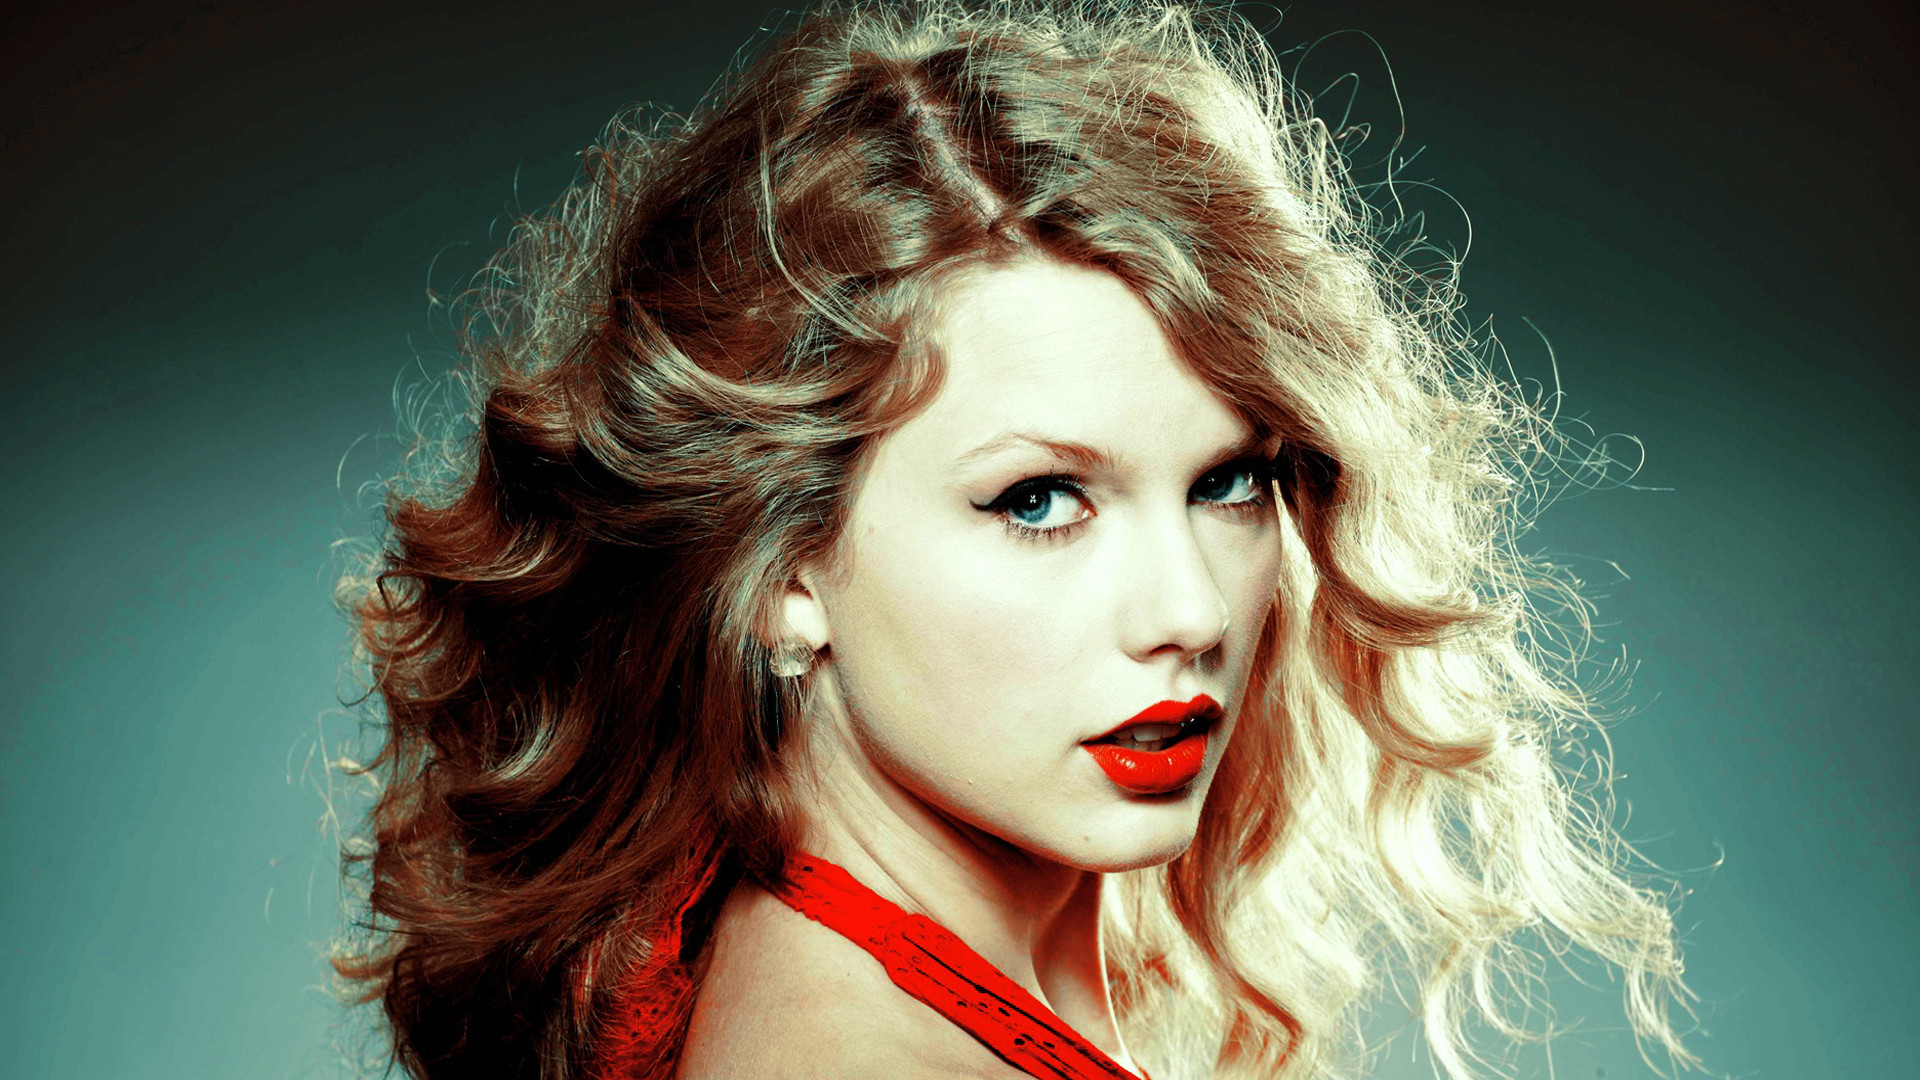 Res: 1920x1080, HD Taylor Swift Wallpapers 01 HD Taylor Swift Wallpapers 02